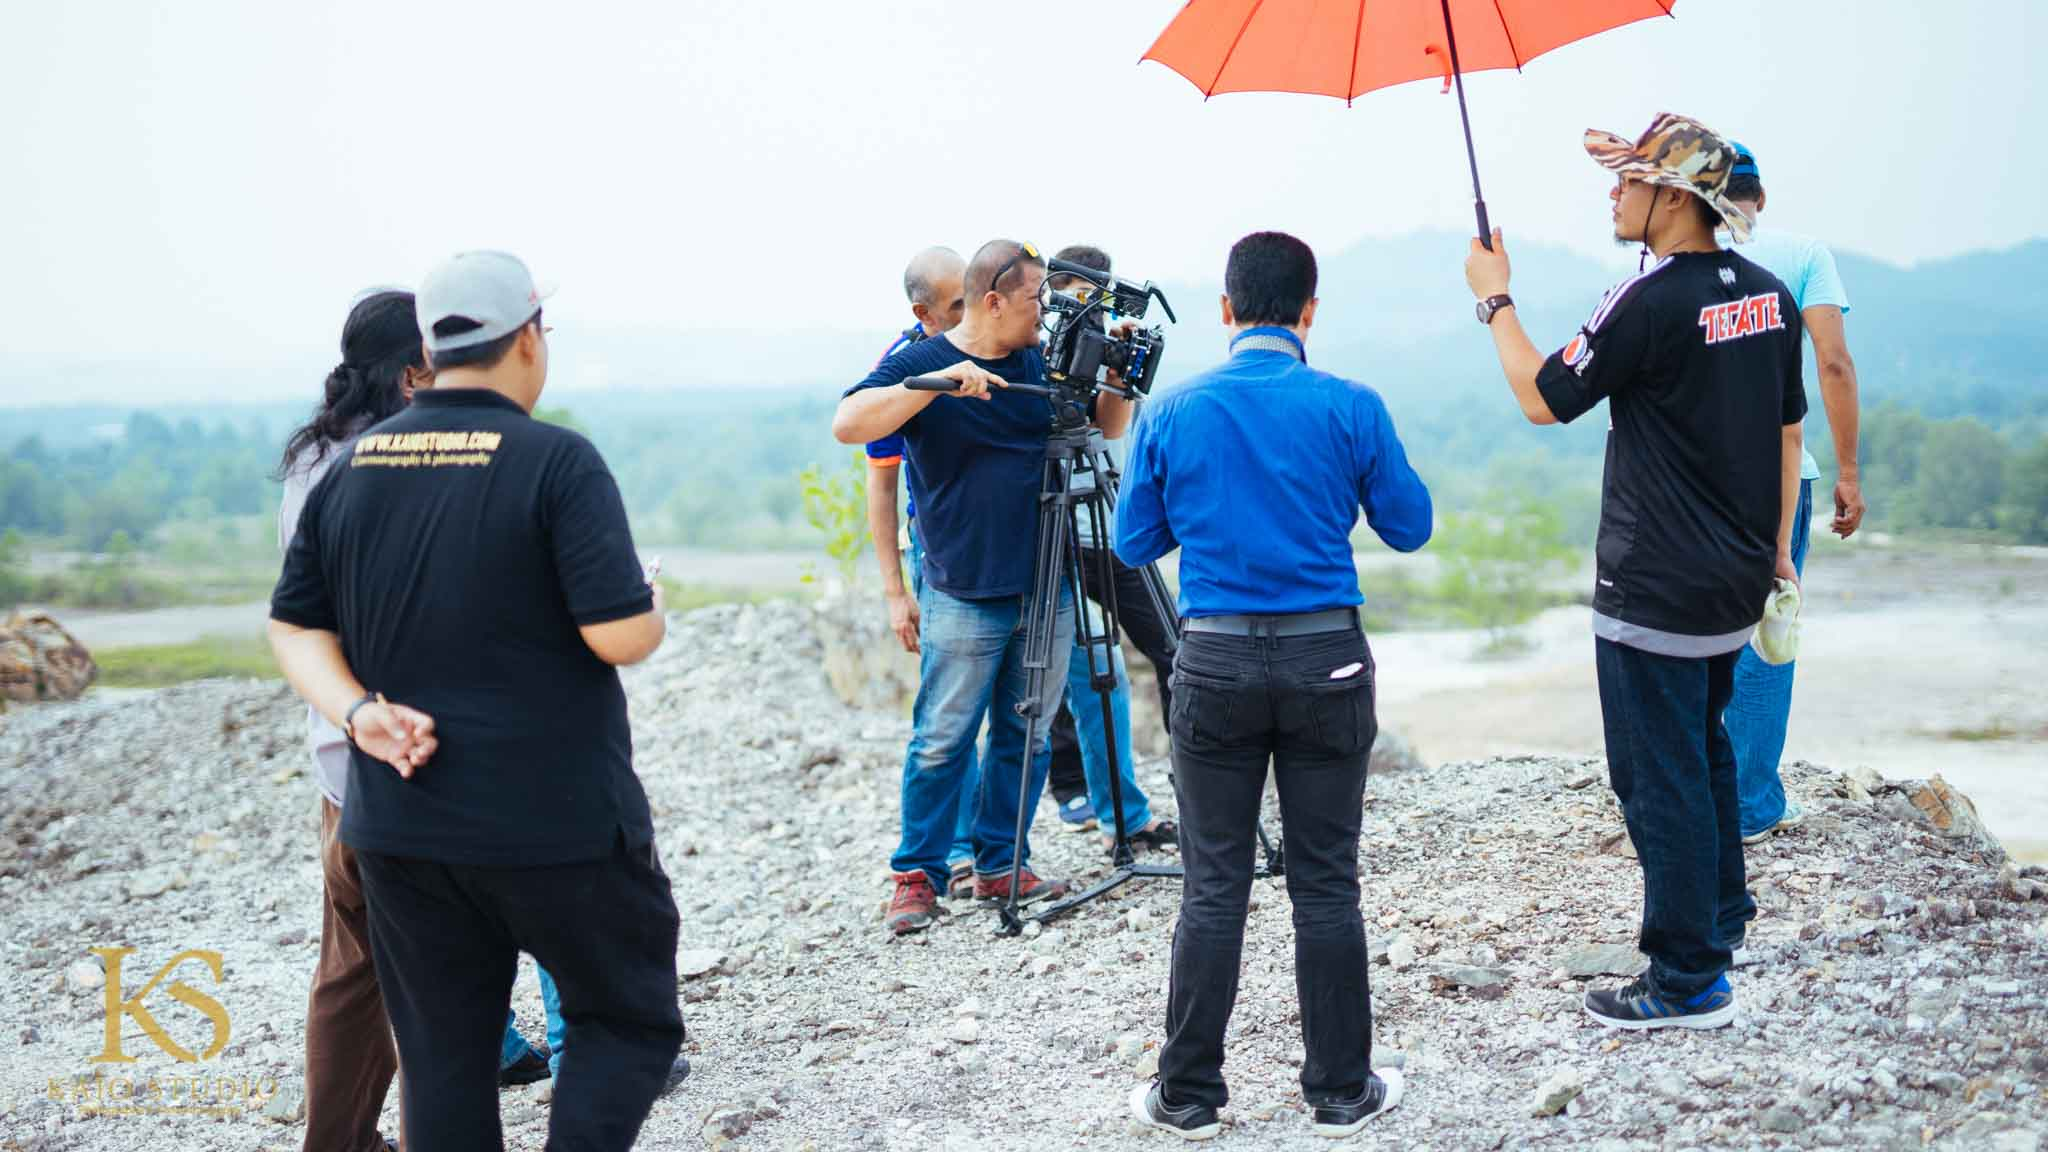 Behind The Scene Commercial Videoshoot for RTM (DRONE BY KAIO STUDIO)